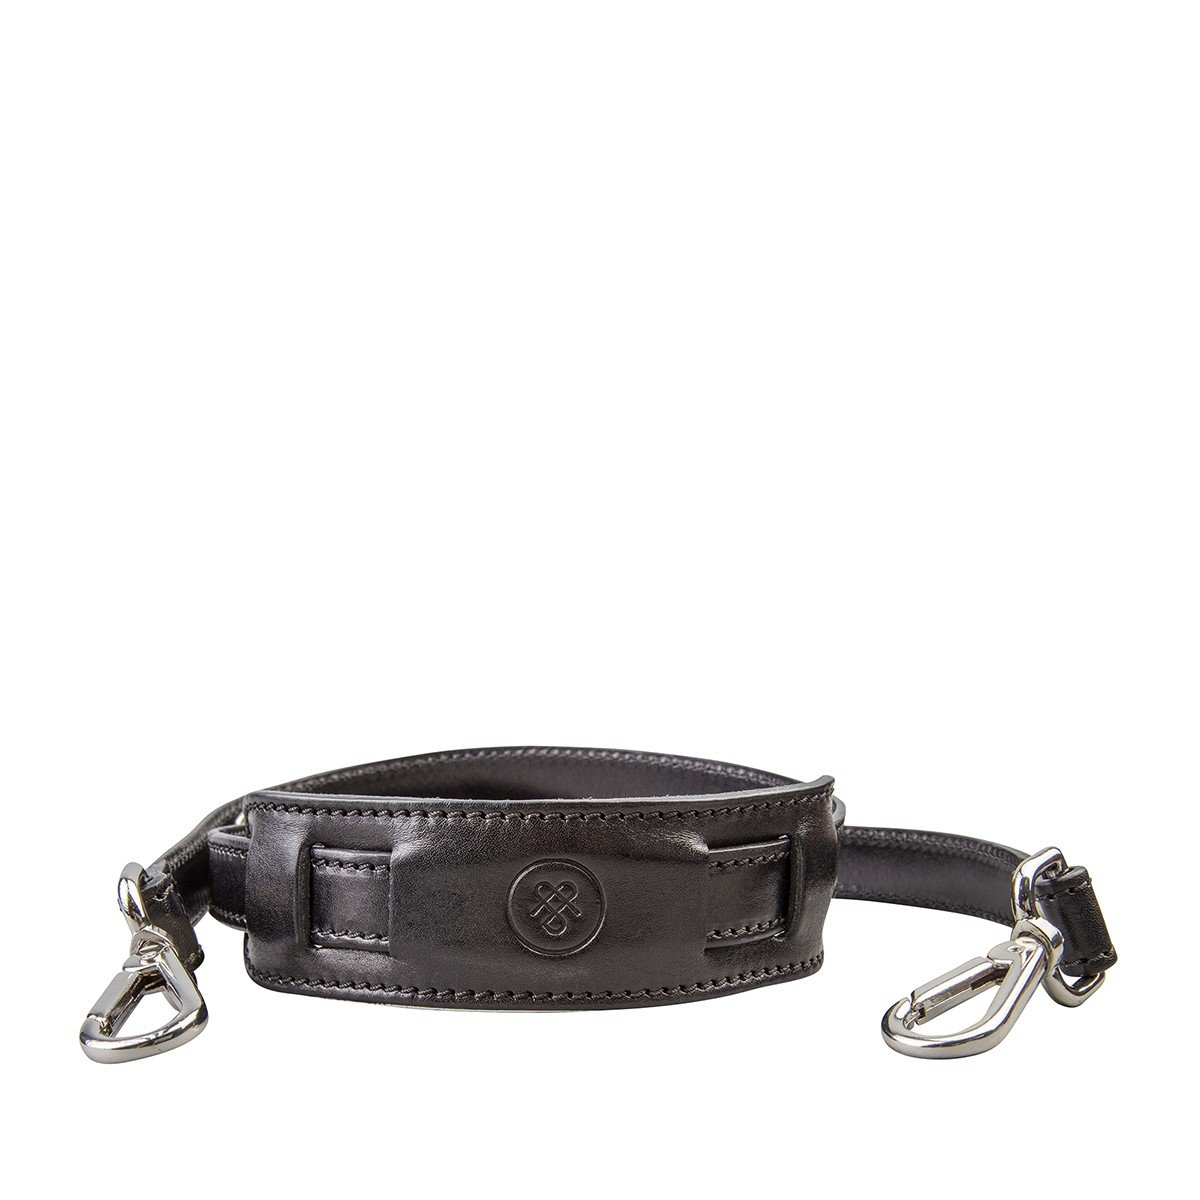 Maxwell Scott Personalized Luxury Black Leather Luggage Shoulder Strap - One Size